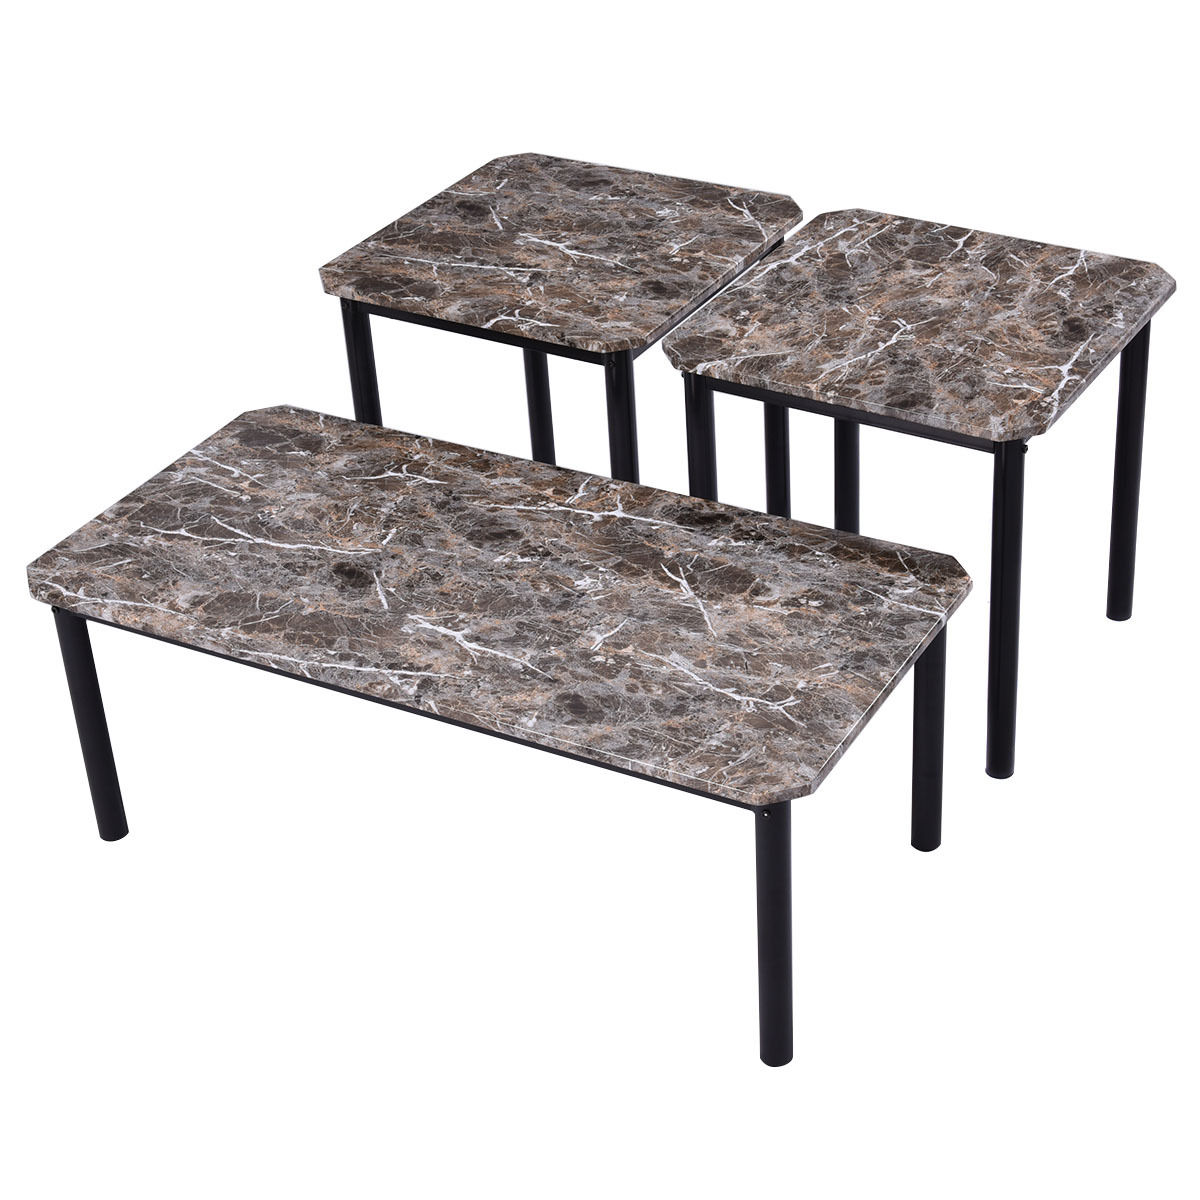 Faux Marble Coffee Table Sets: 3 Piece Modern Faux Marble Coffee And End Table Set Living